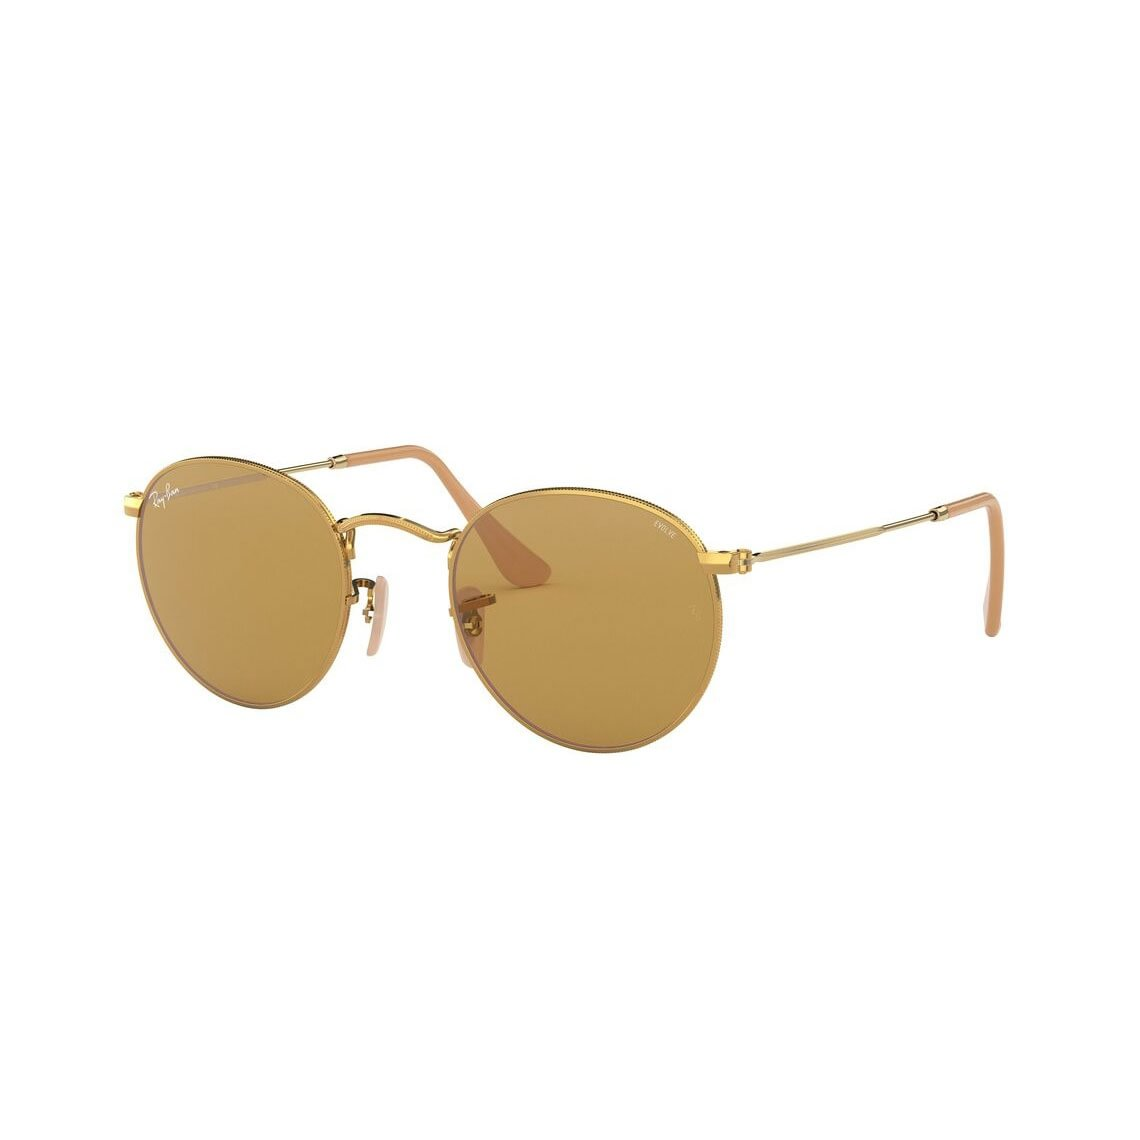 Ray-Ban Round metal RB3447 90644I 53